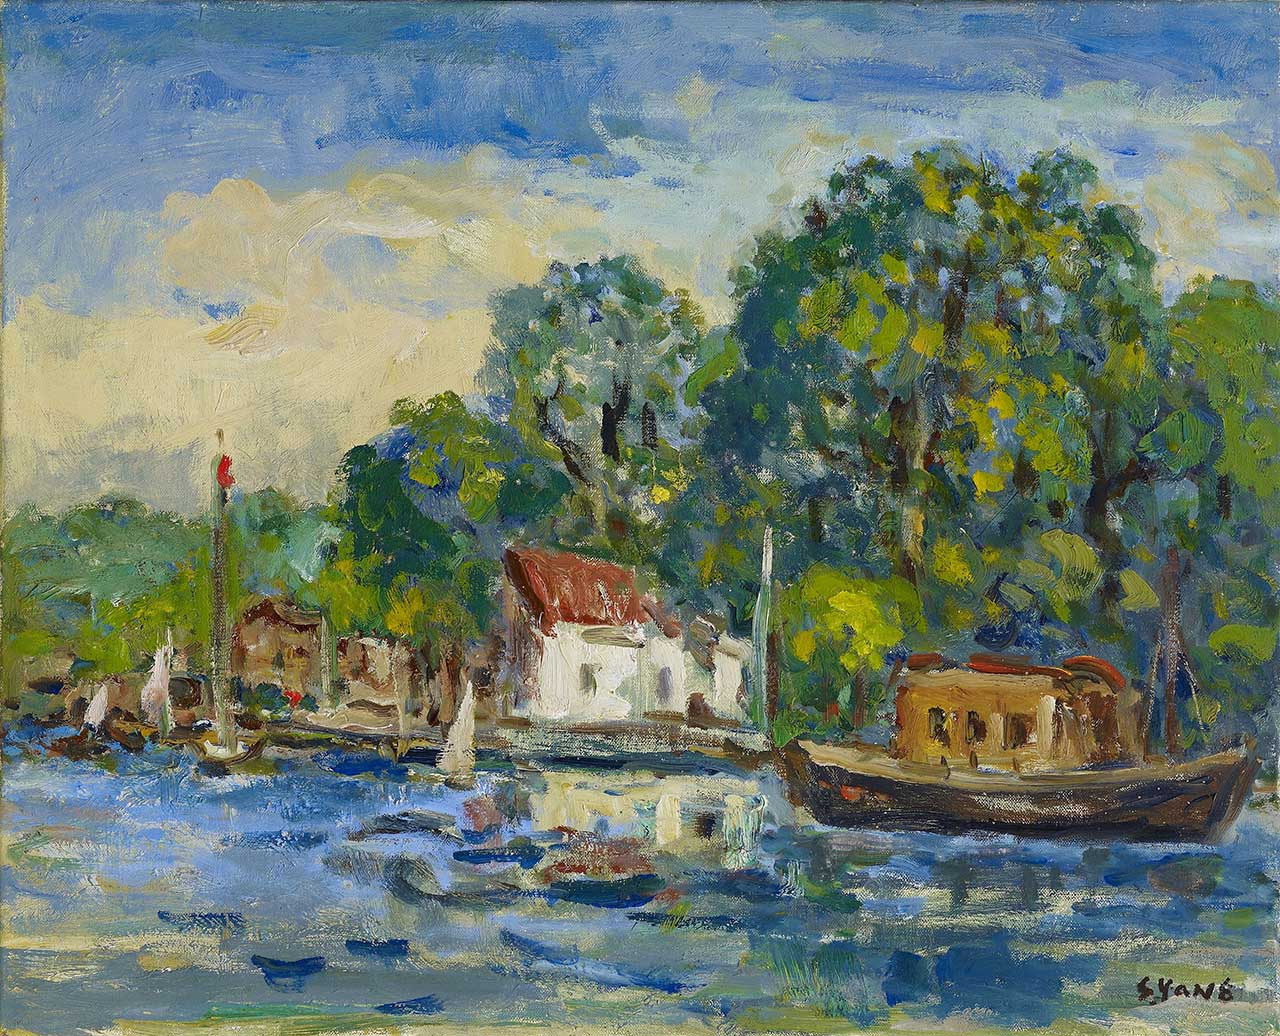 Dock (Scenery in Holland) Oil on canvas 52.3x65 cm